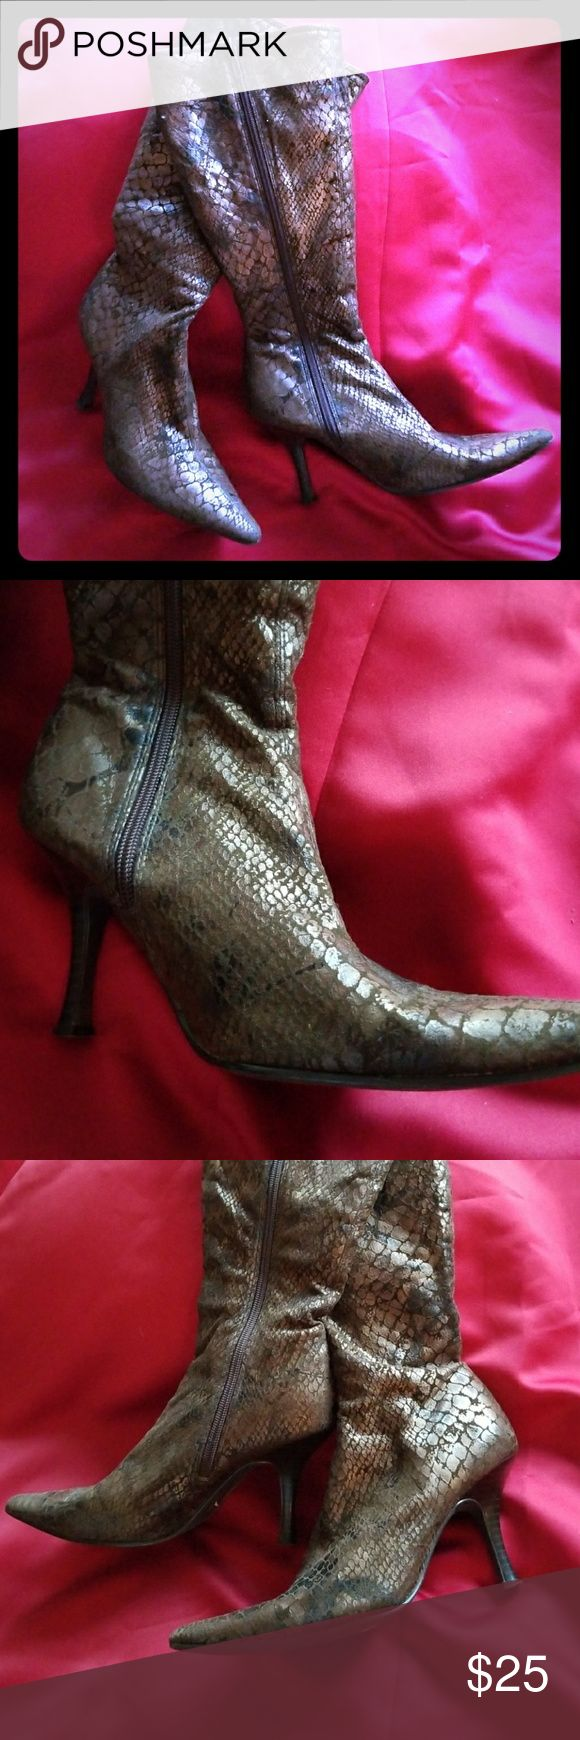 Chilis snakeskin soft heel boot Never worn, size 6m chilis snakeskin boot. Very soft and warm. Chilis Shoes Heeled Boots